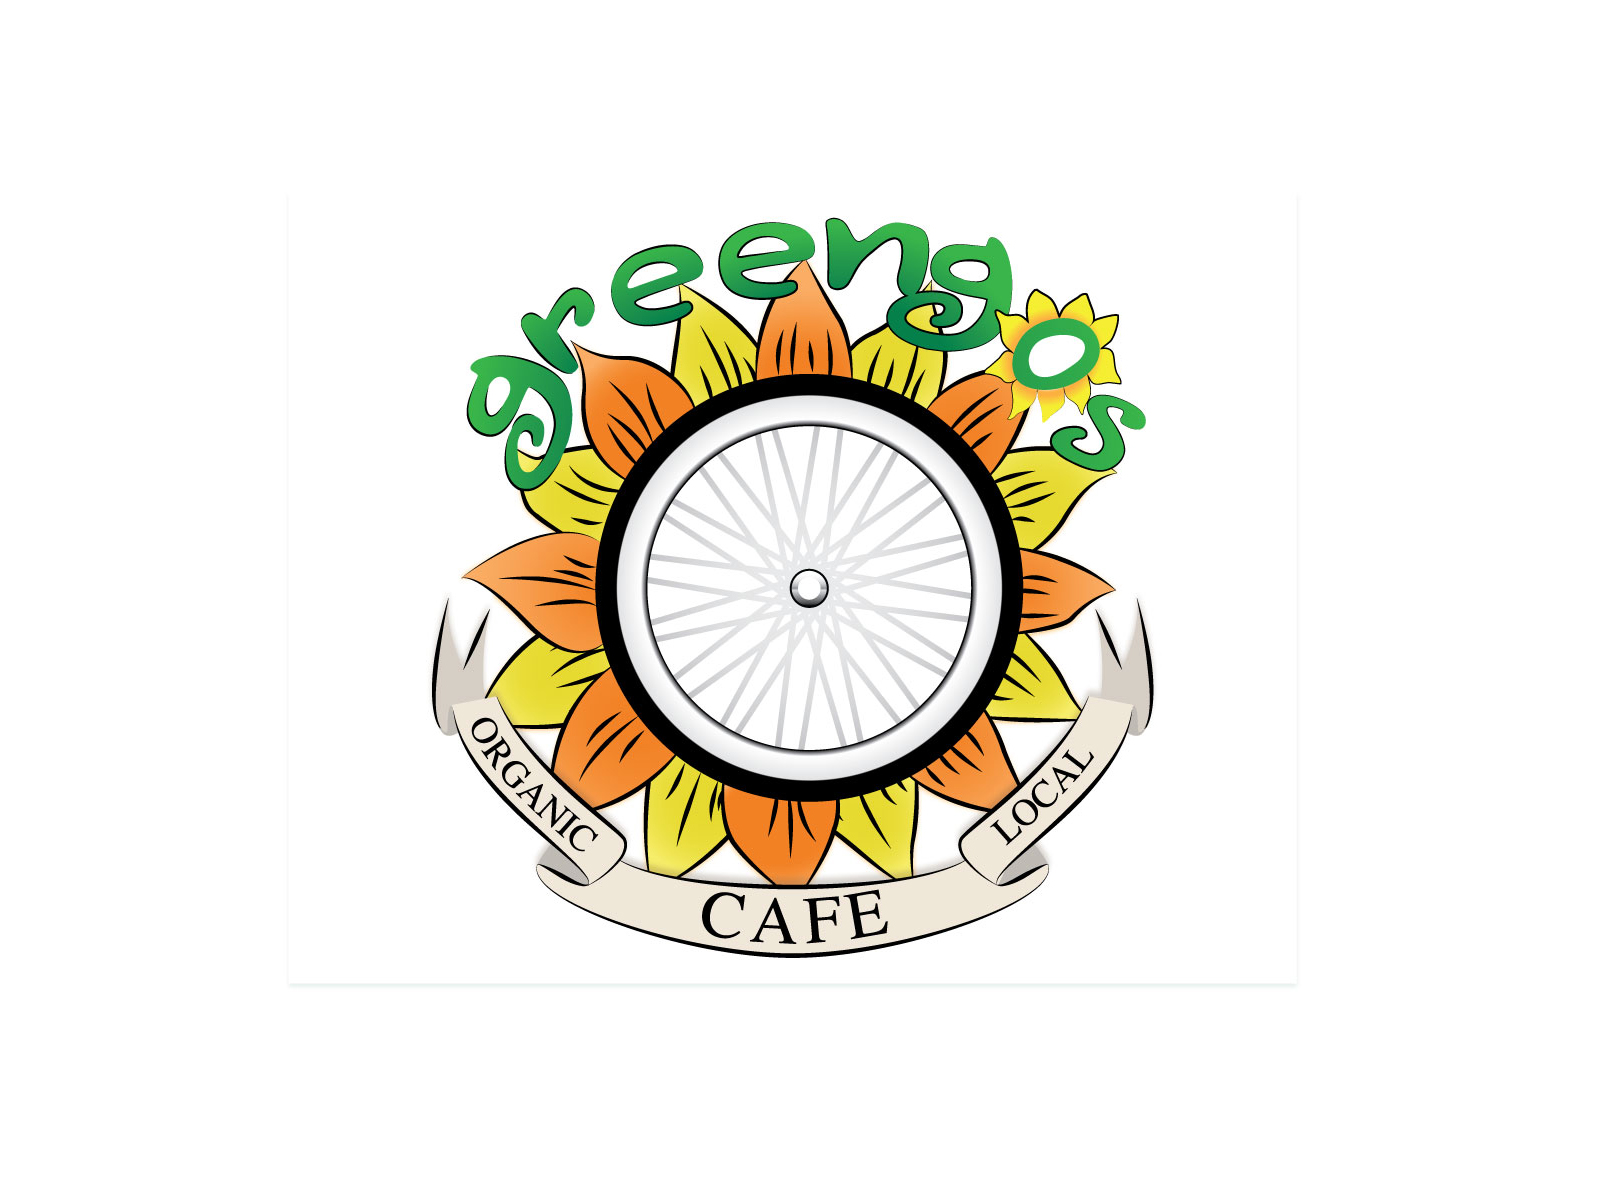 Greengos Cafe